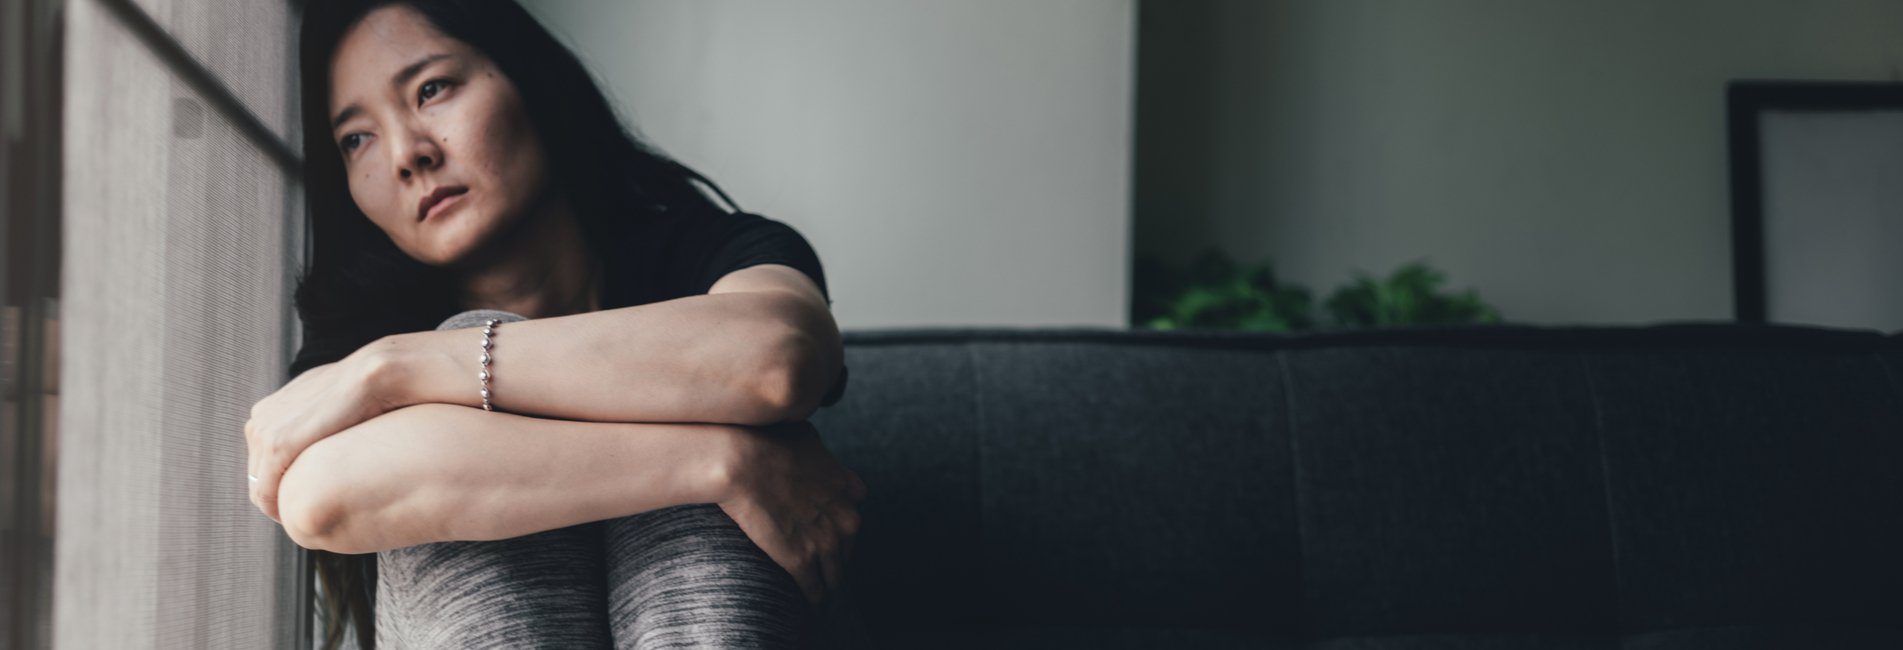 Recovery In An Anxious Culture Resurgence – A woman with anxiety considers her treatment options for addiction recovery.